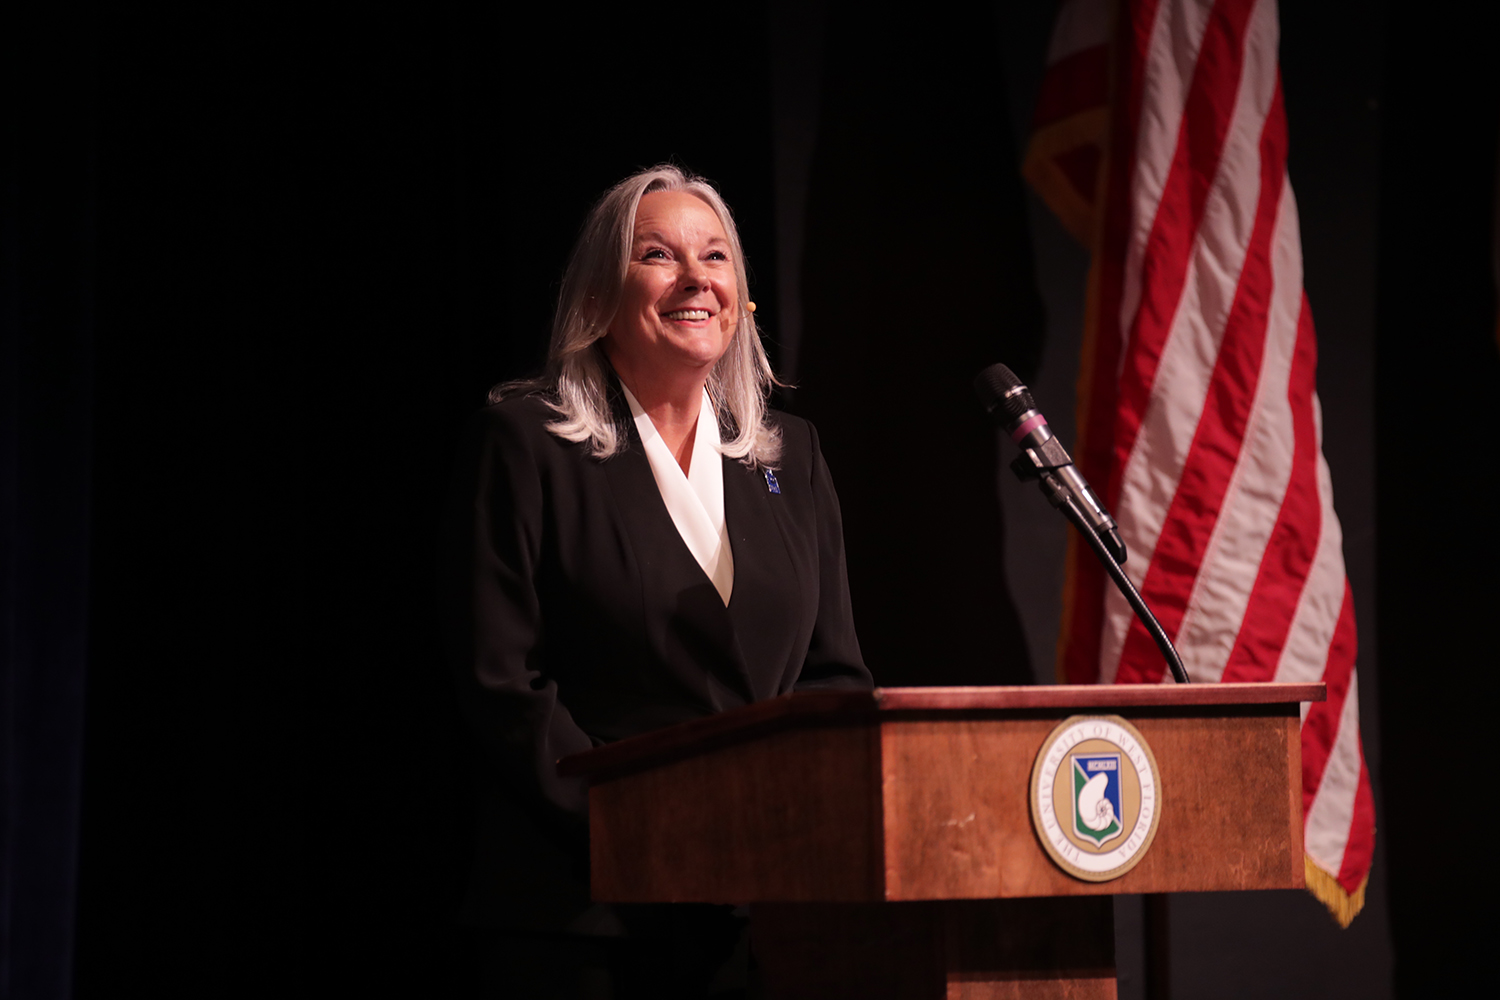 UWF President Martha D. Saunders at the State of the University Address, Sept. 27, 2019